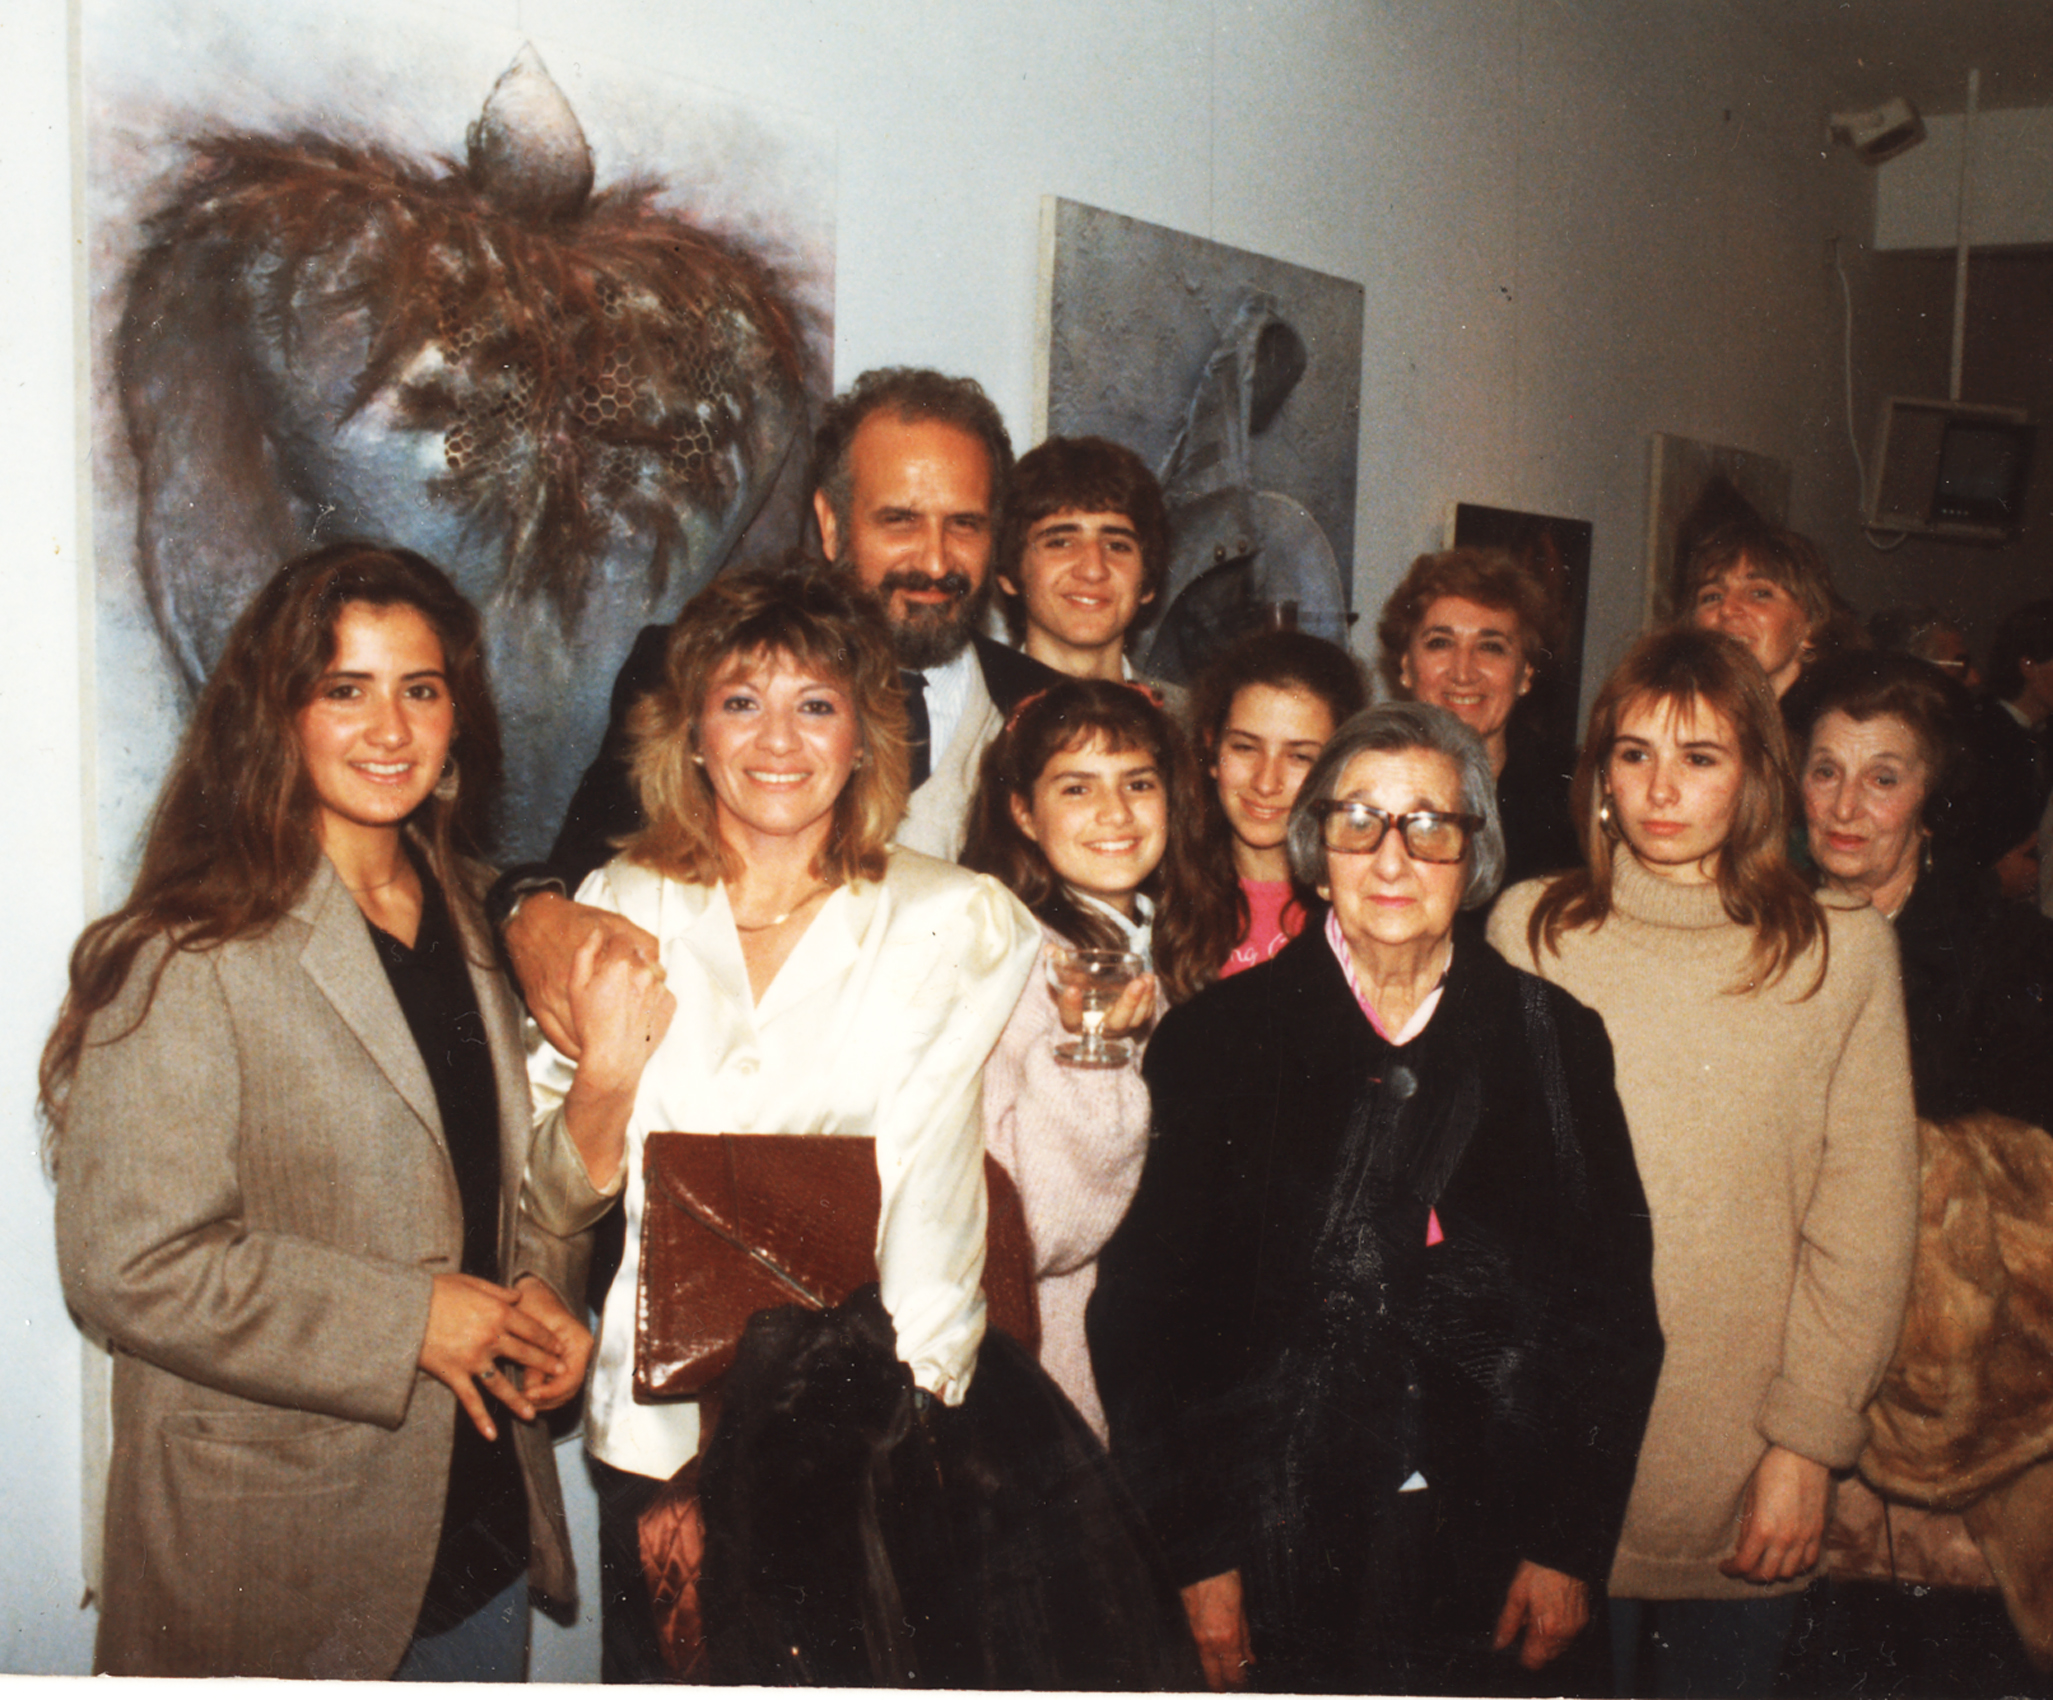 From left to right: my daughter Ivana Muriel Cardo; my first former wife Silvia Arenales; me; at my side, my son, Iara Gabriel Cardo; below him, my daughter Sabrina Sofía Cardo; at her side, my daughter Samanta Brenda Cardo; in the front, my mother, Blanca Esther Badde; to her right, my daughter Nuria Andrea Cardo; behind my mother, my sister, Edith Mabel Cardo Dodds; at her side, partially seen, her daughter, Janine Dodds; and at right, my aunt and godmother, Norma Badde.